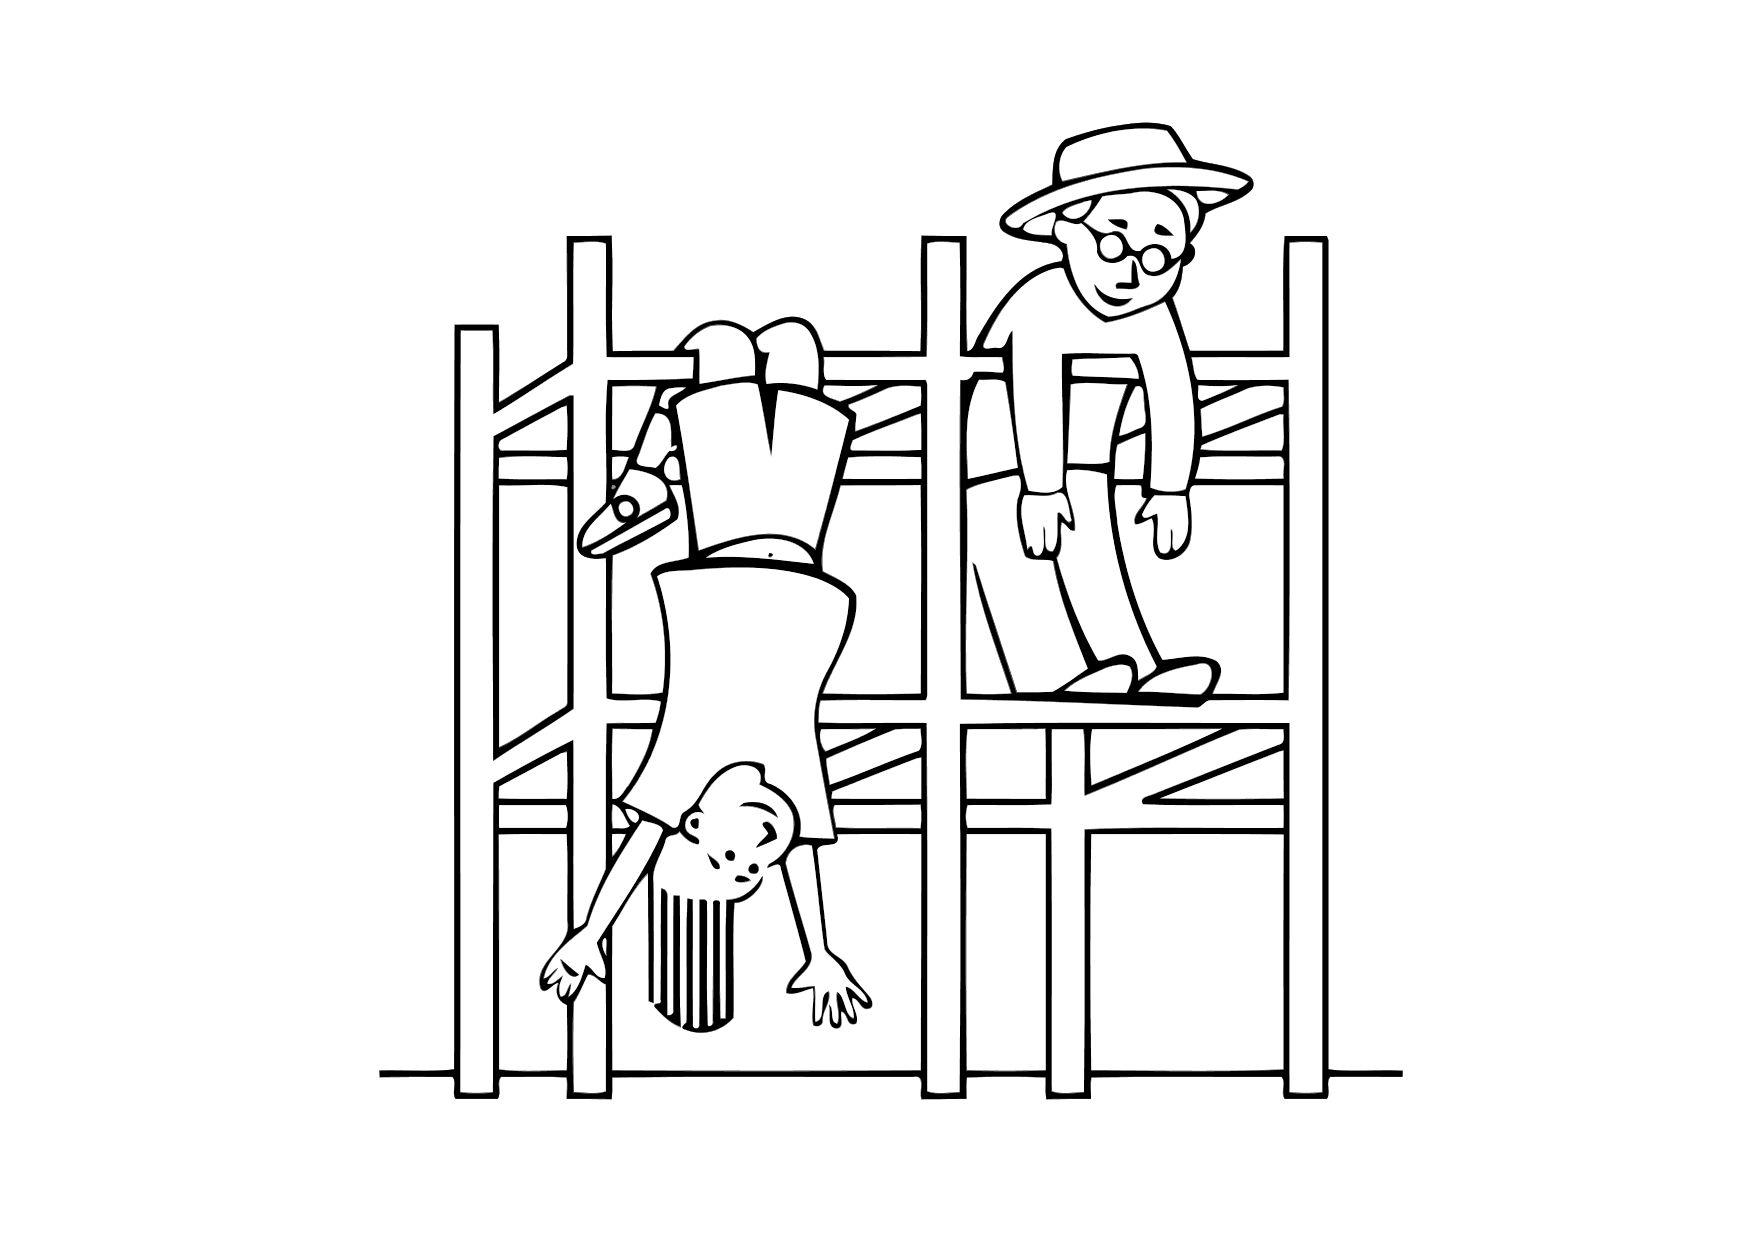 Coloring page jungle gym - img 11337.